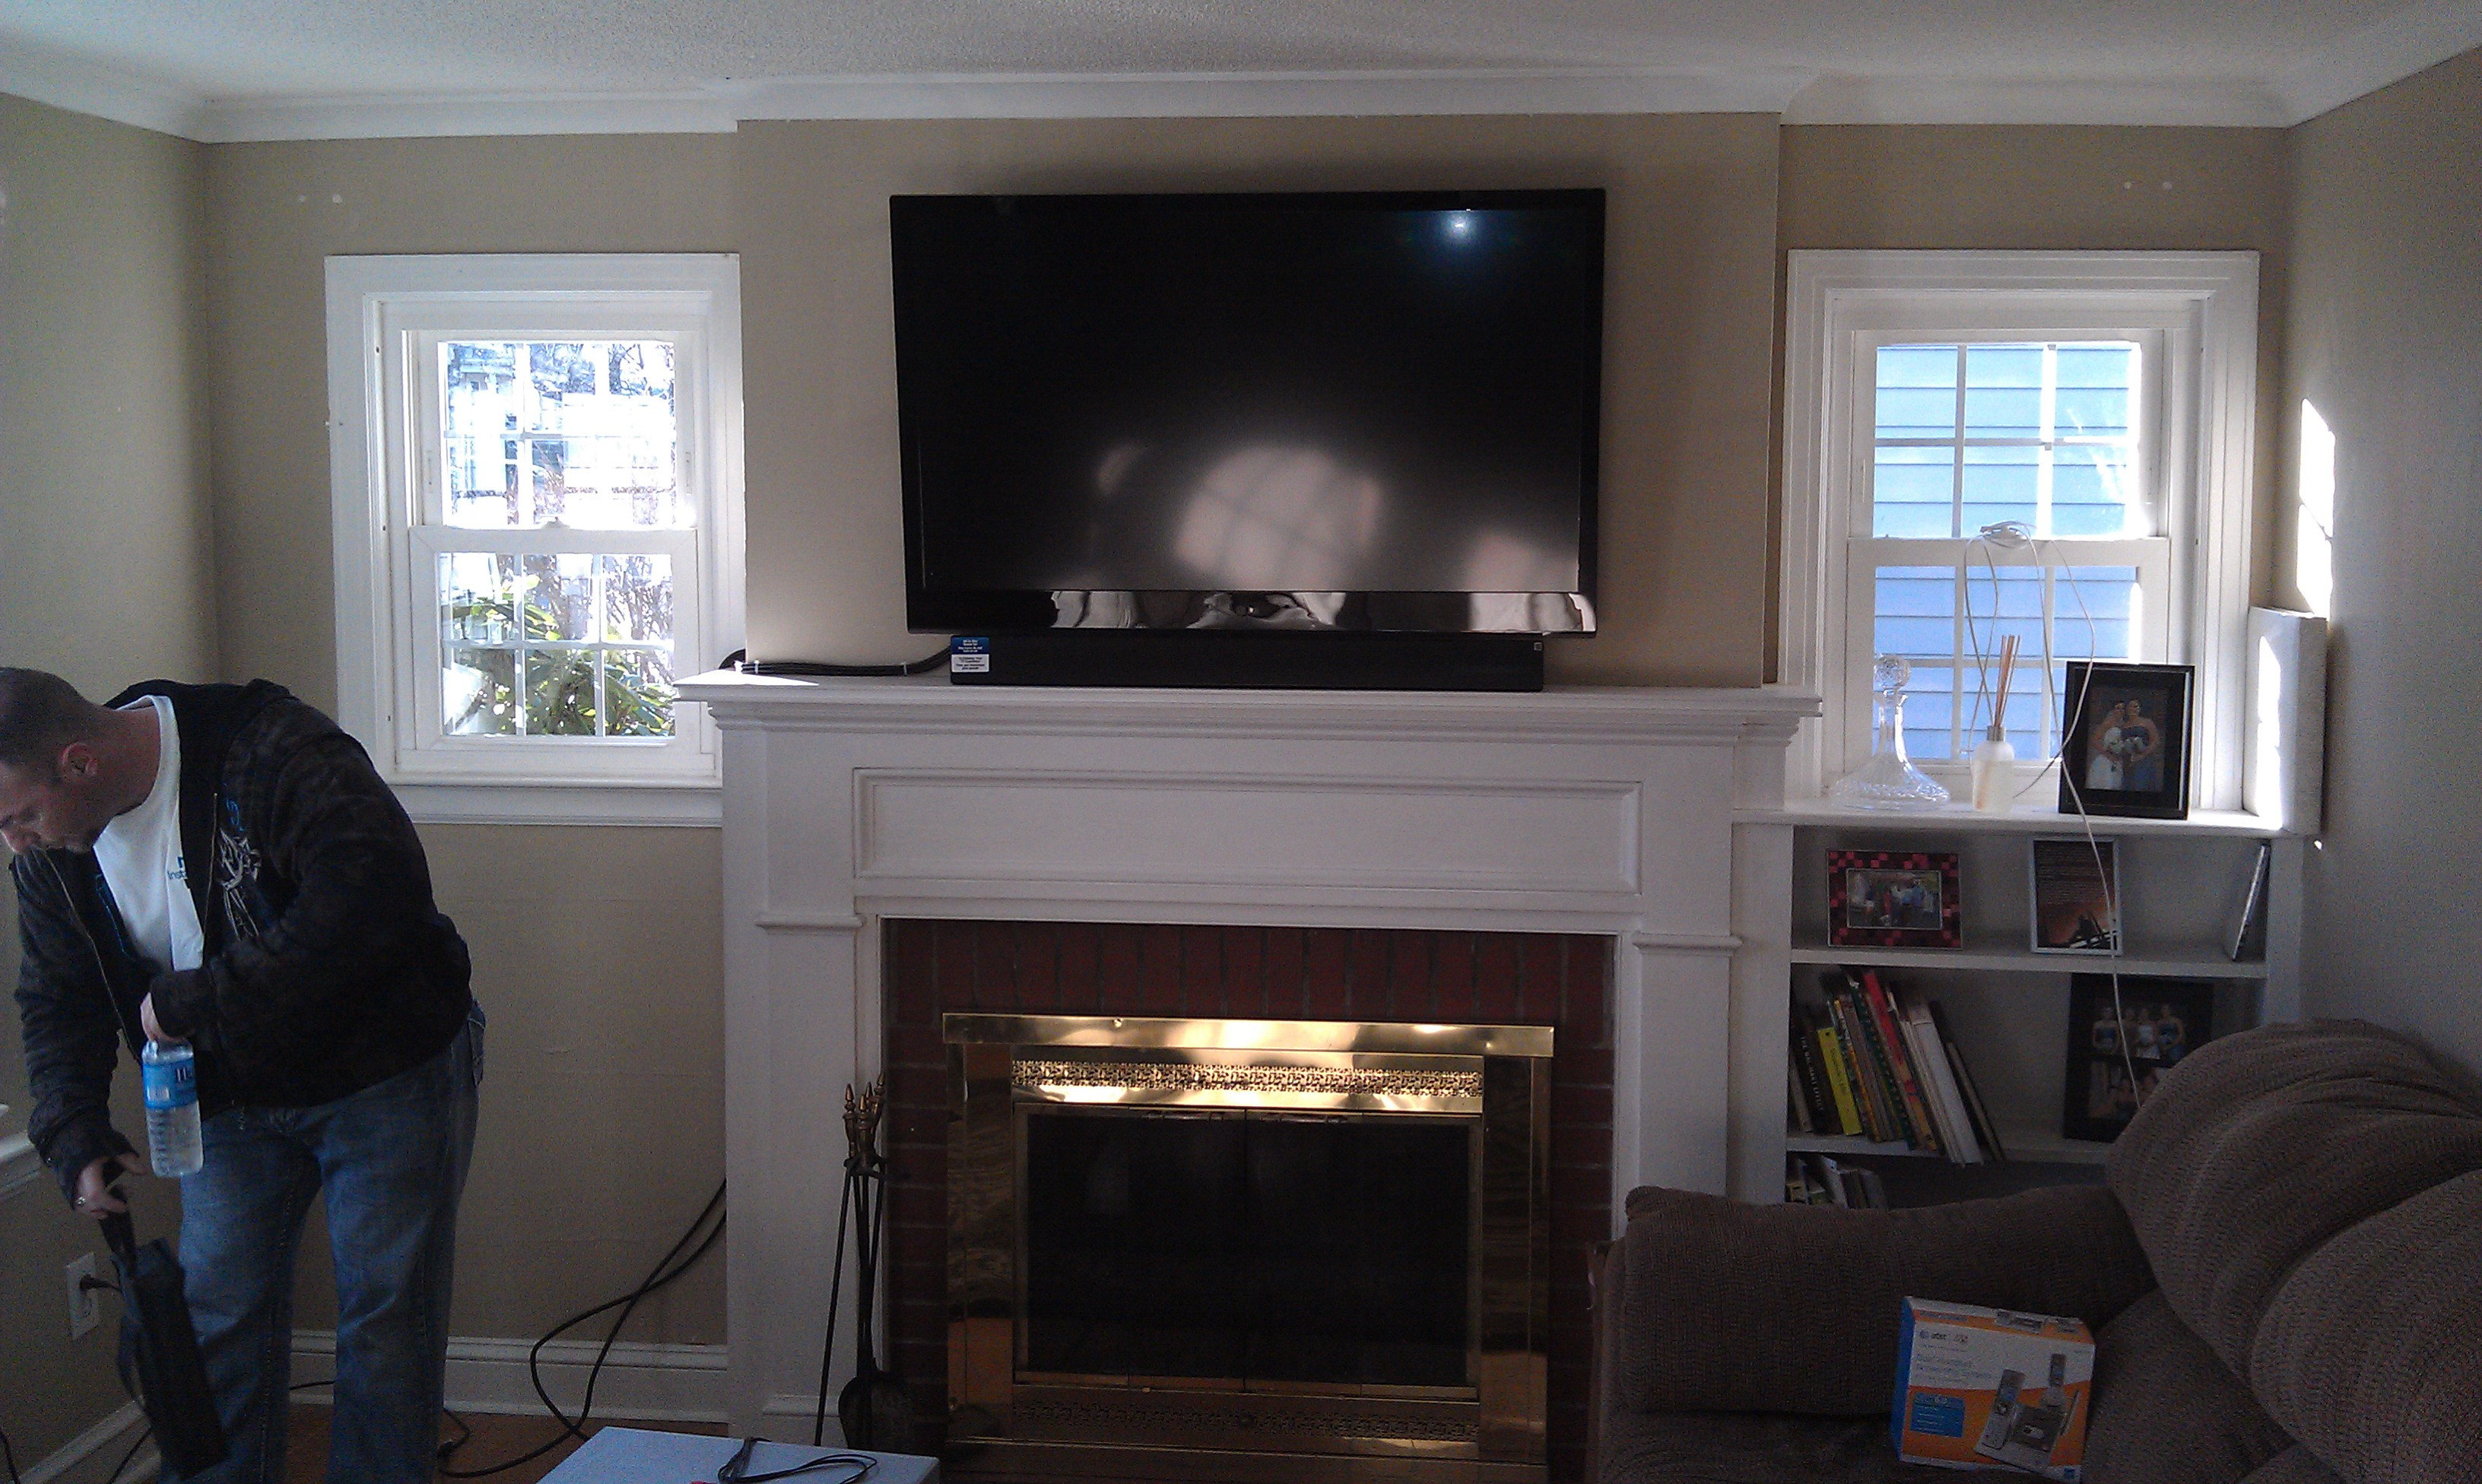 Best ideas about Mounting Tv Above Fireplace . Save or Pin richeygroup Home Theater Installation Now.